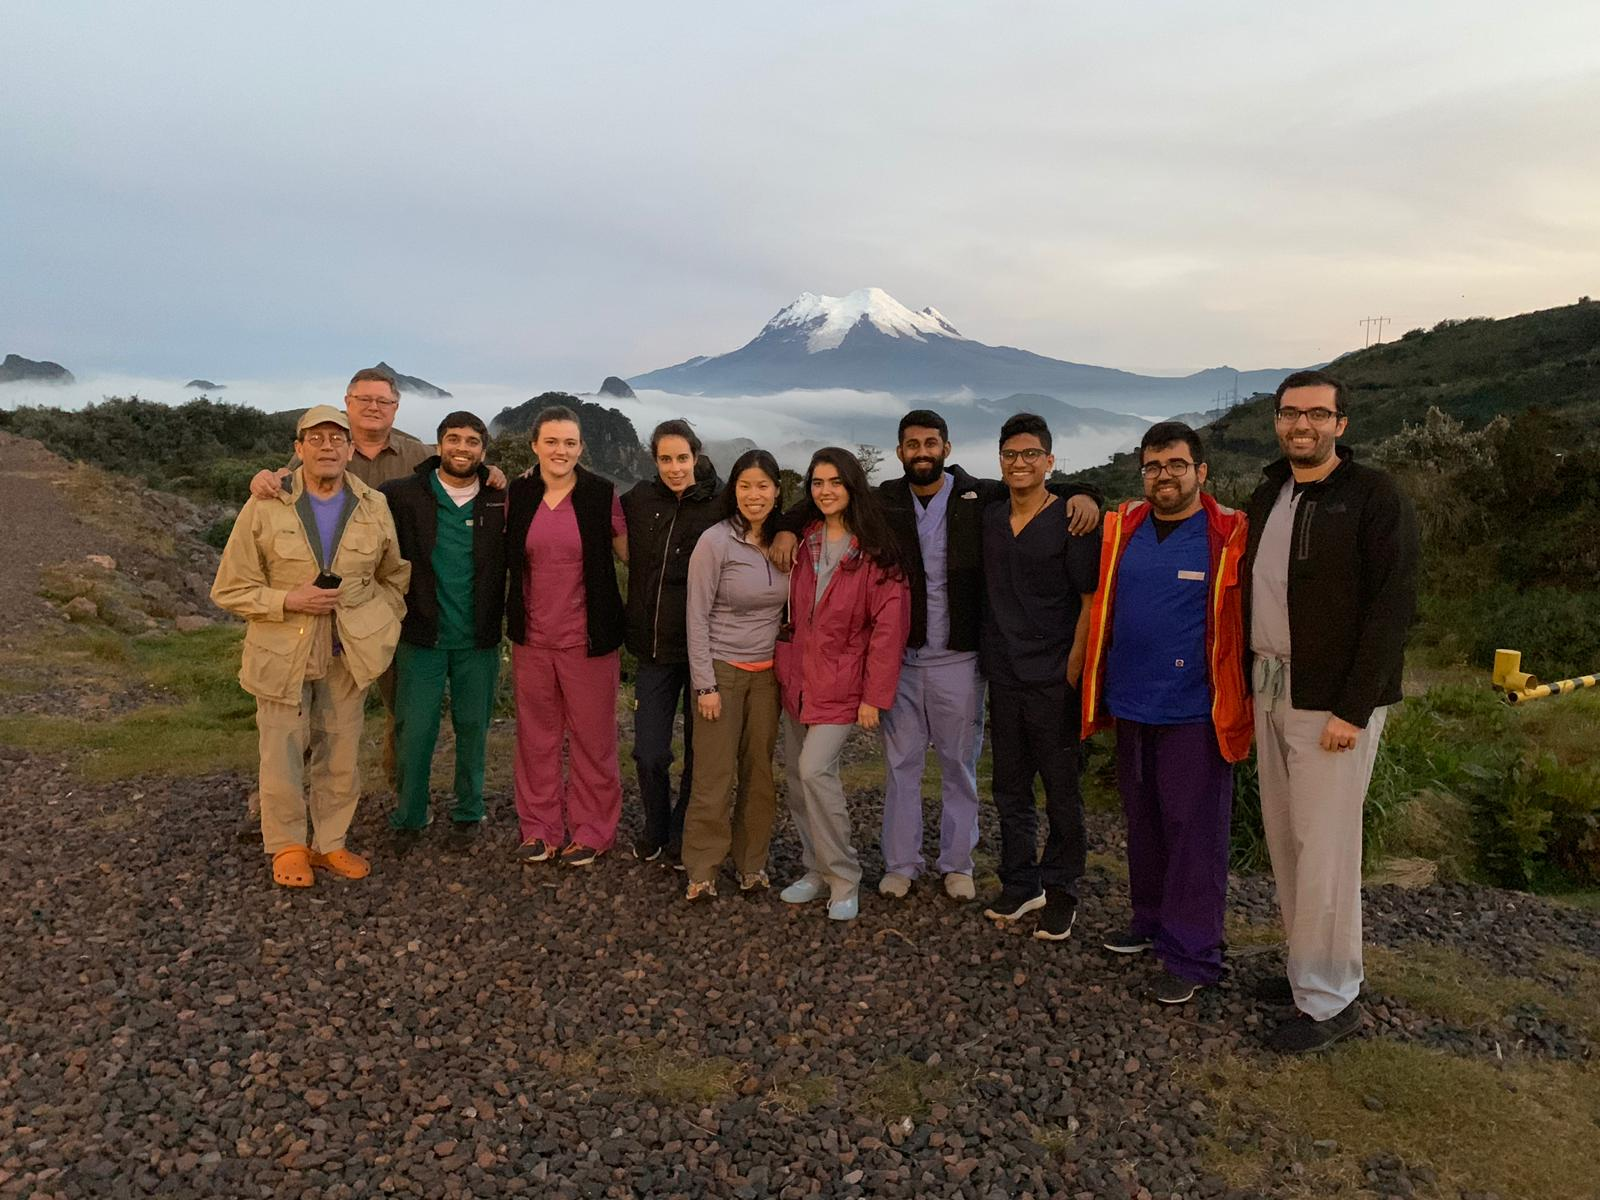 Wayne State medical students travel to Ecuador with the WHSO for service learning trip